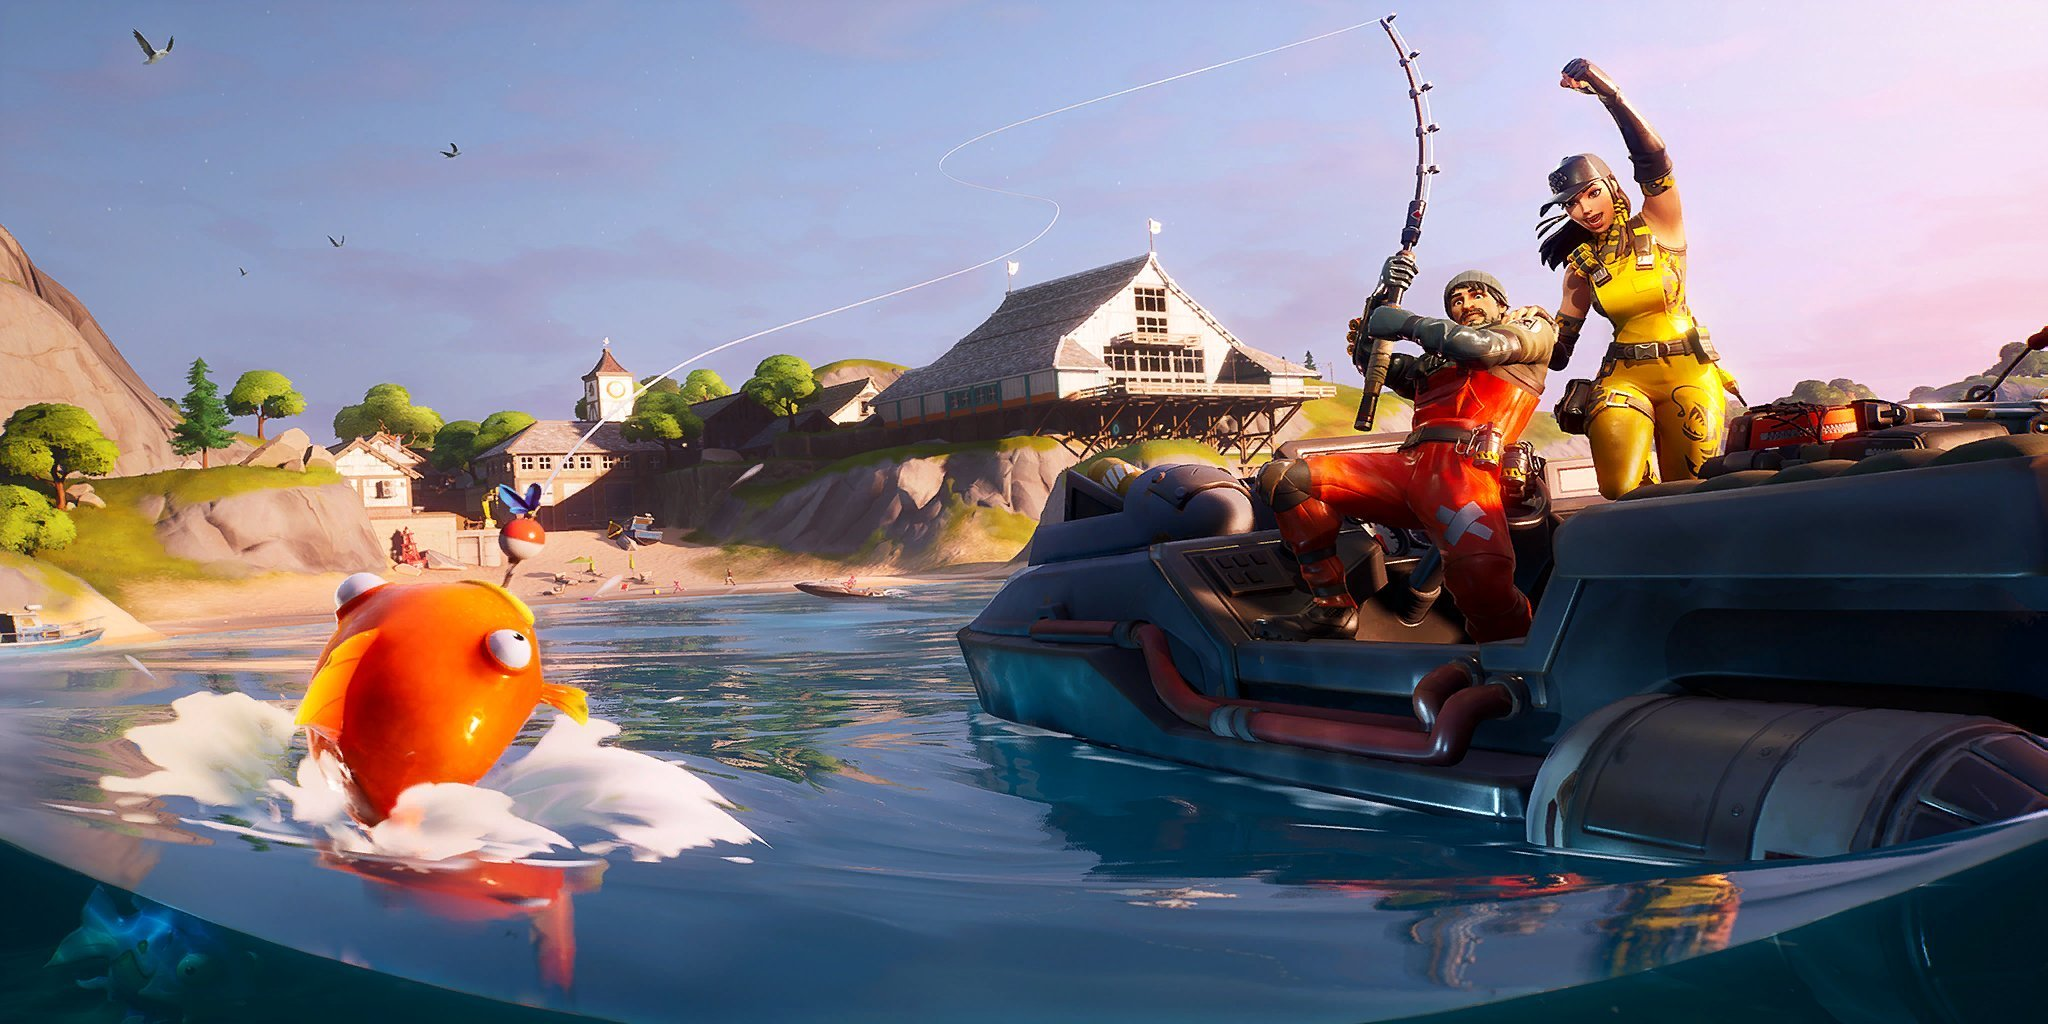 Gone Fishing   After the Black Hole: 11 Changes in Fortnite Chapter 2   Gammicks